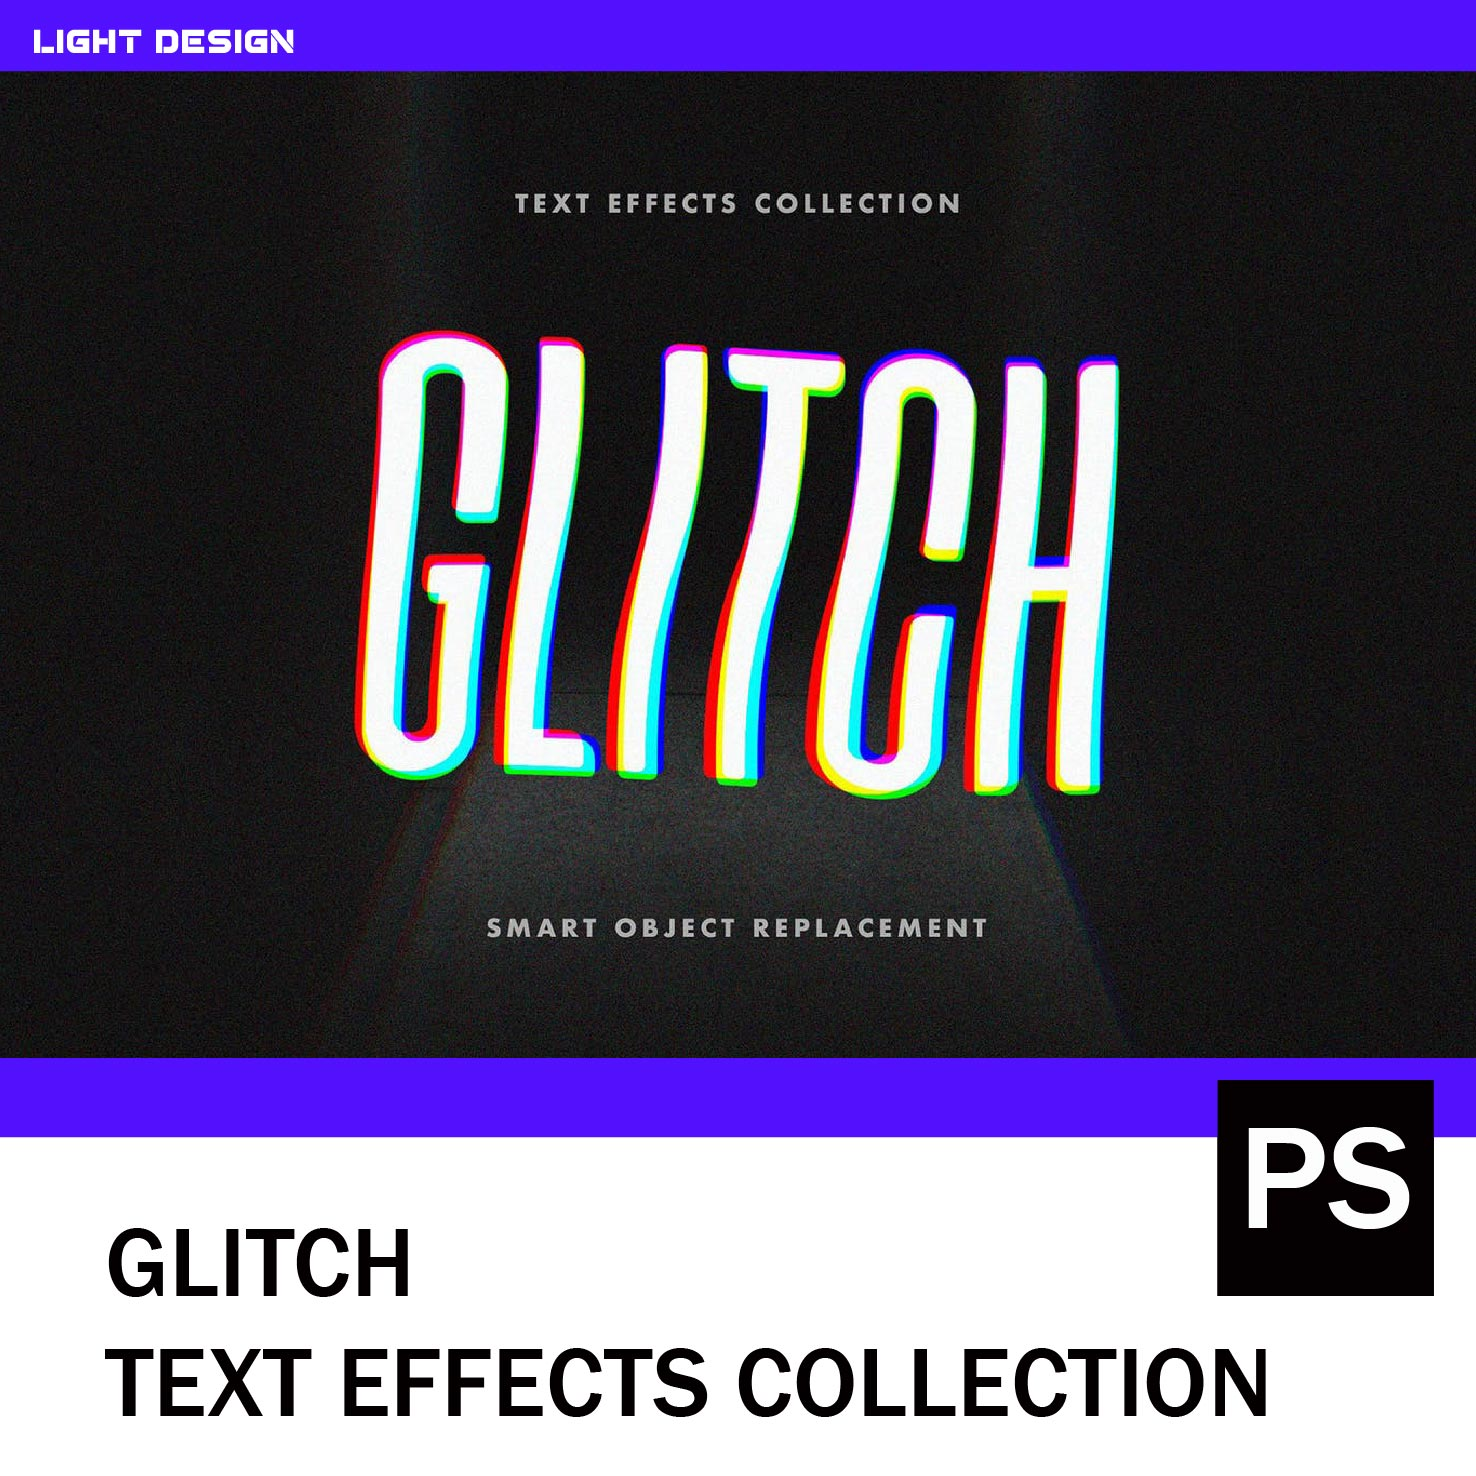 Glitch text effects collection cool distortion error effect PS design material